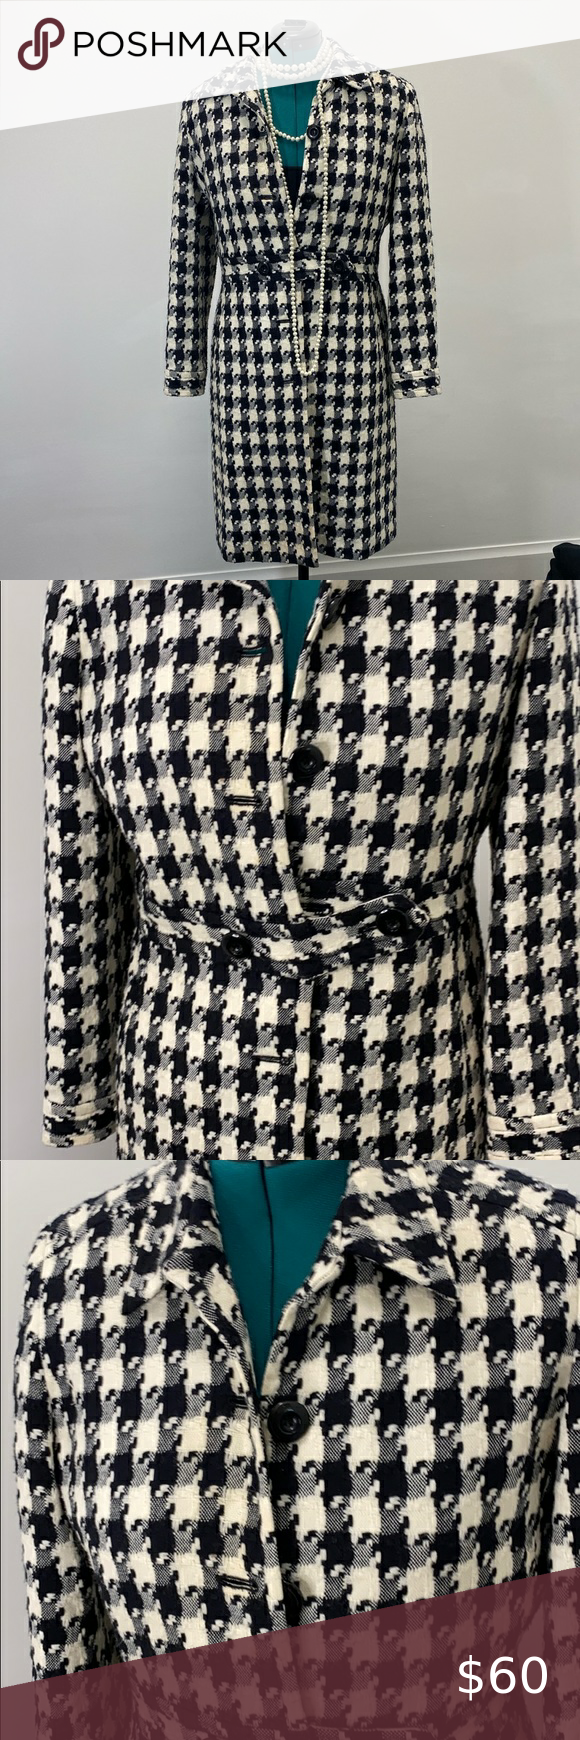 Signature by Larry Levine long jacket coat Long button down jacket. Very warm and chic. Signature by Larry Levine Jackets & Coats Trench Coats